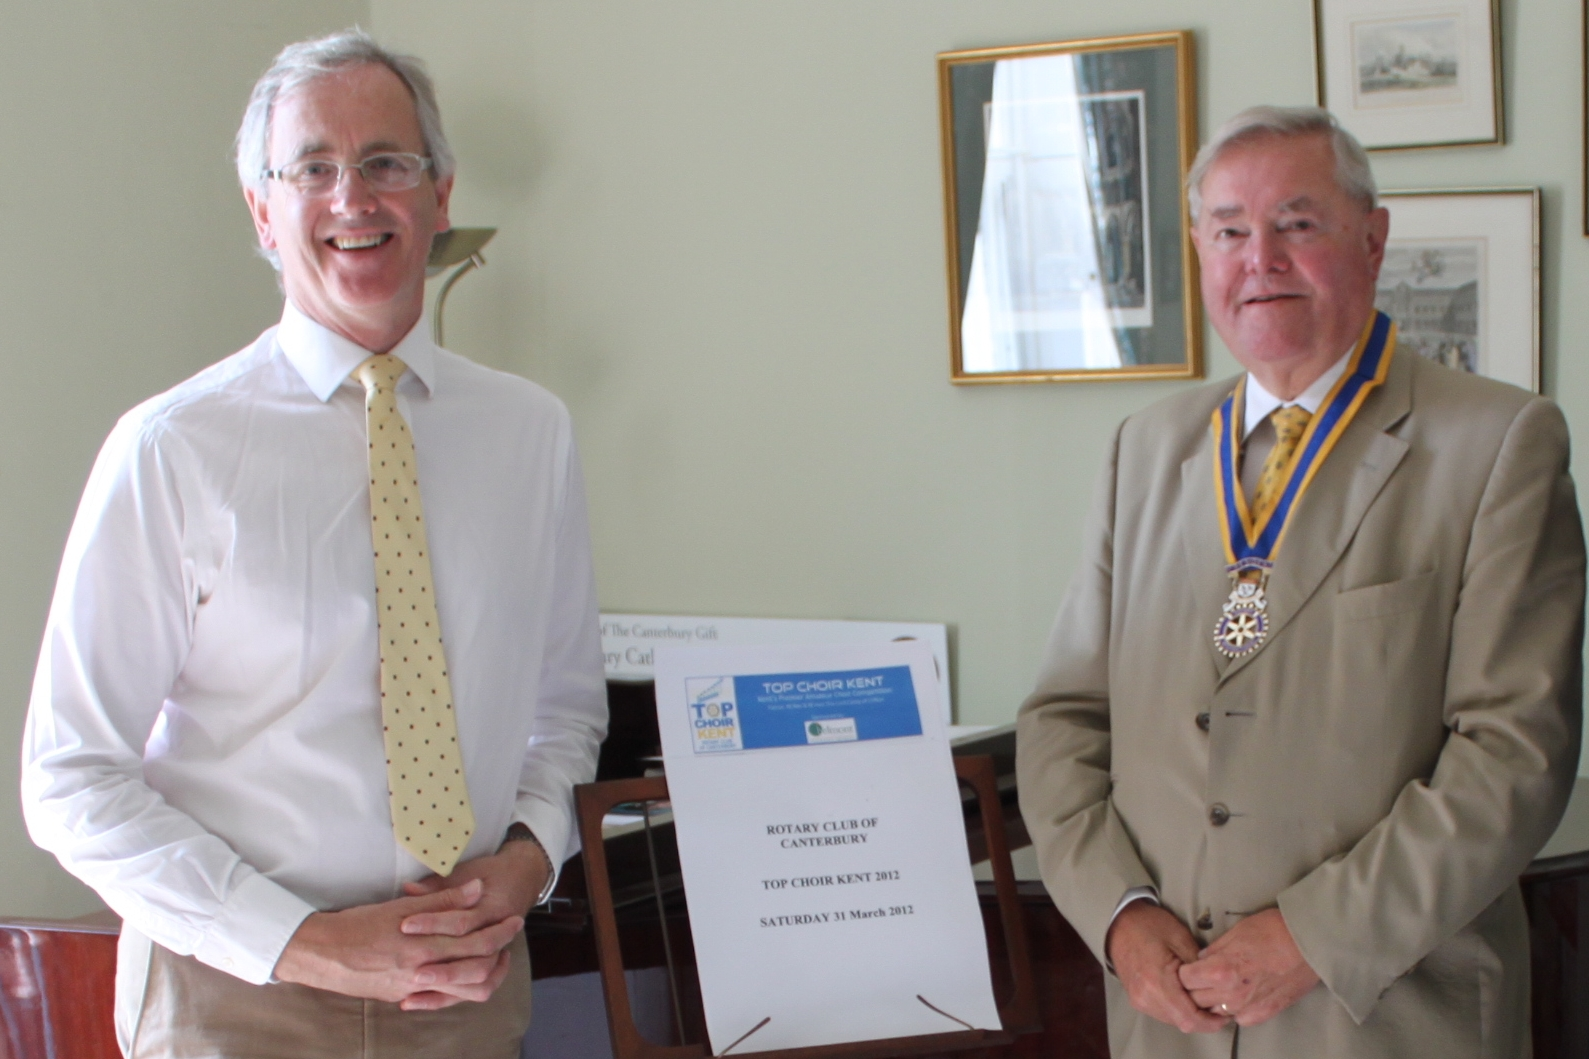 Dr David Flood (left) and President Harry Cragg launch Top Choir Kent 2012